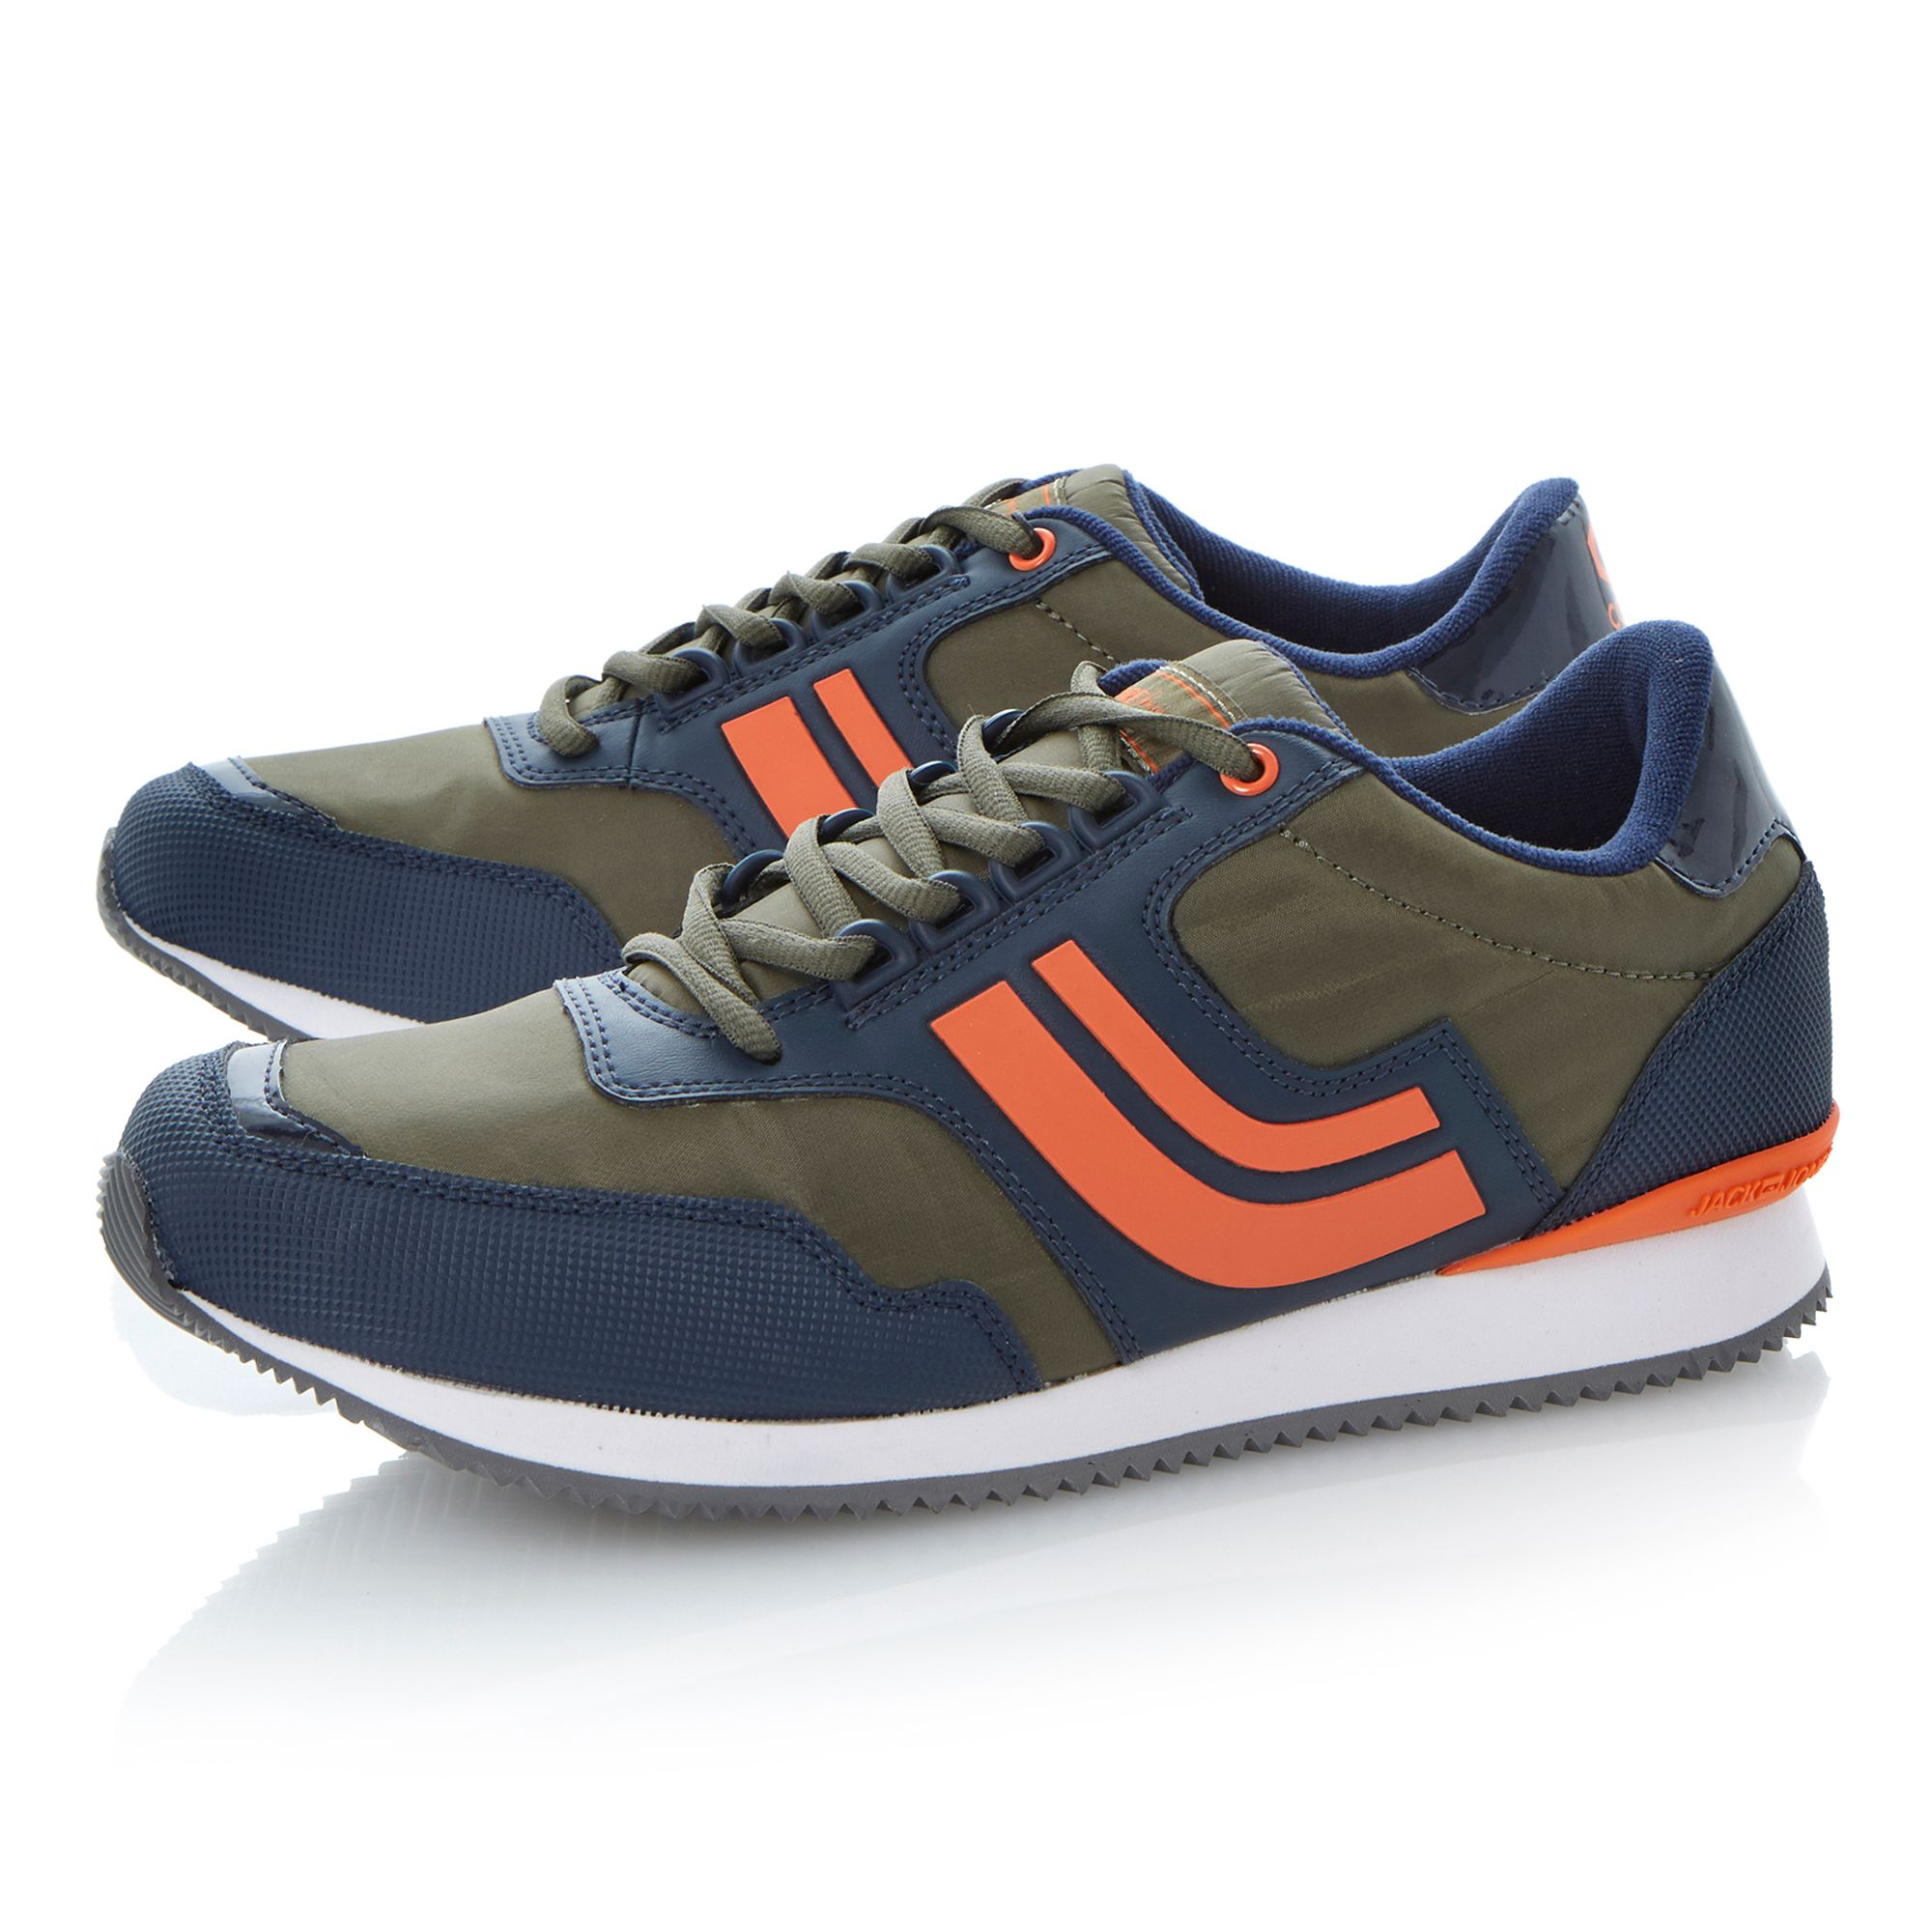 Jj harlem core lace up vintage runners